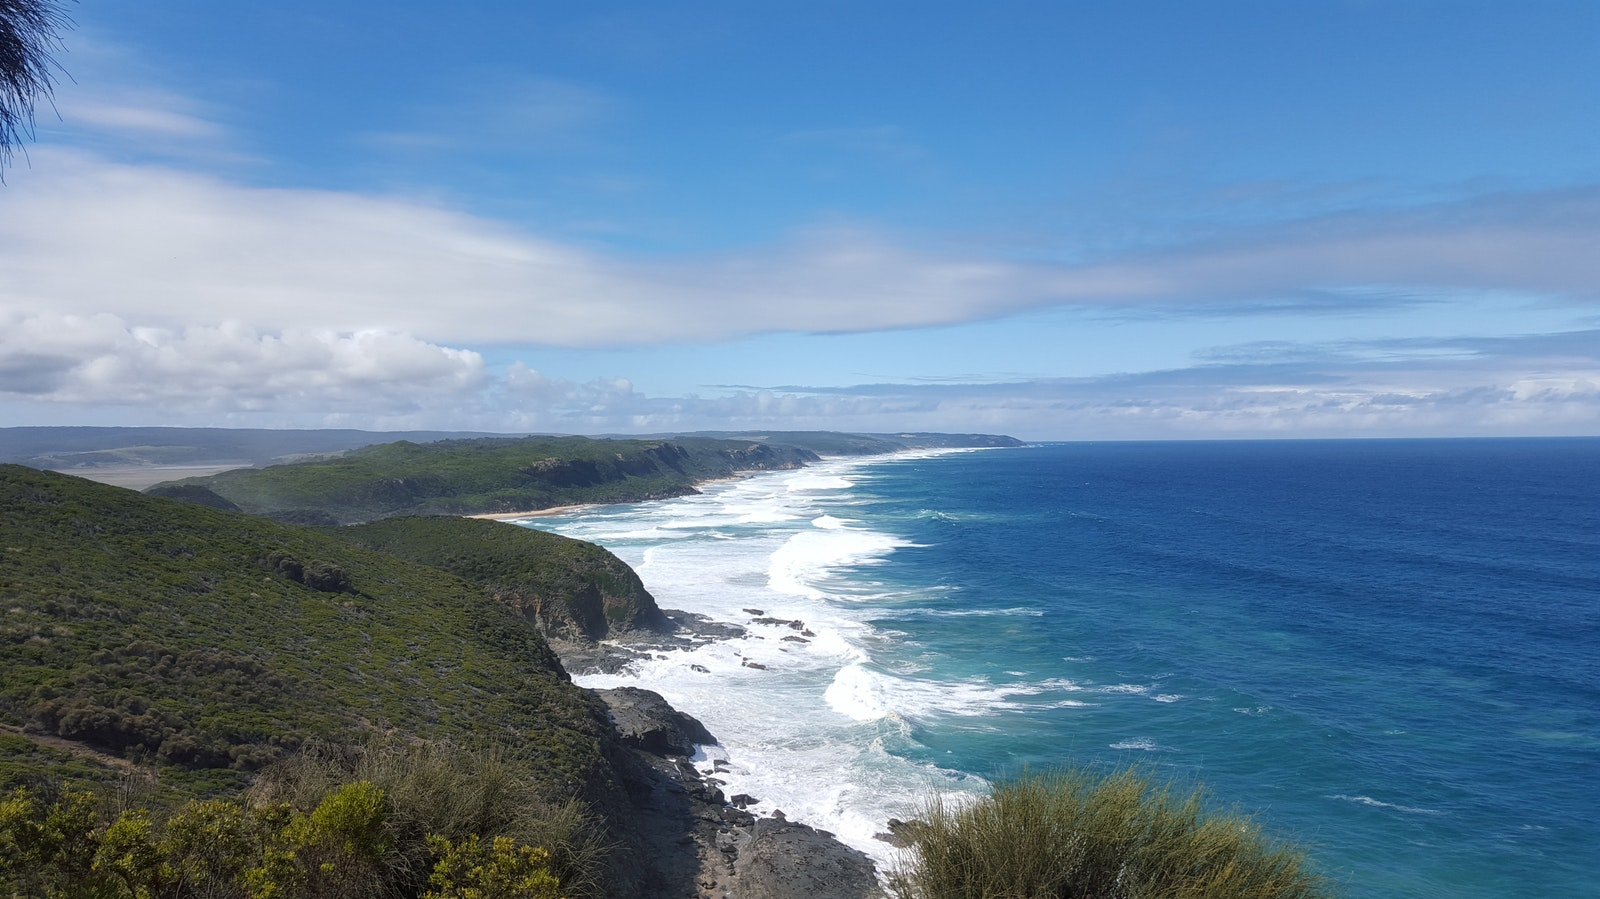 View from near Castle Cove on the Great Ocean Walk